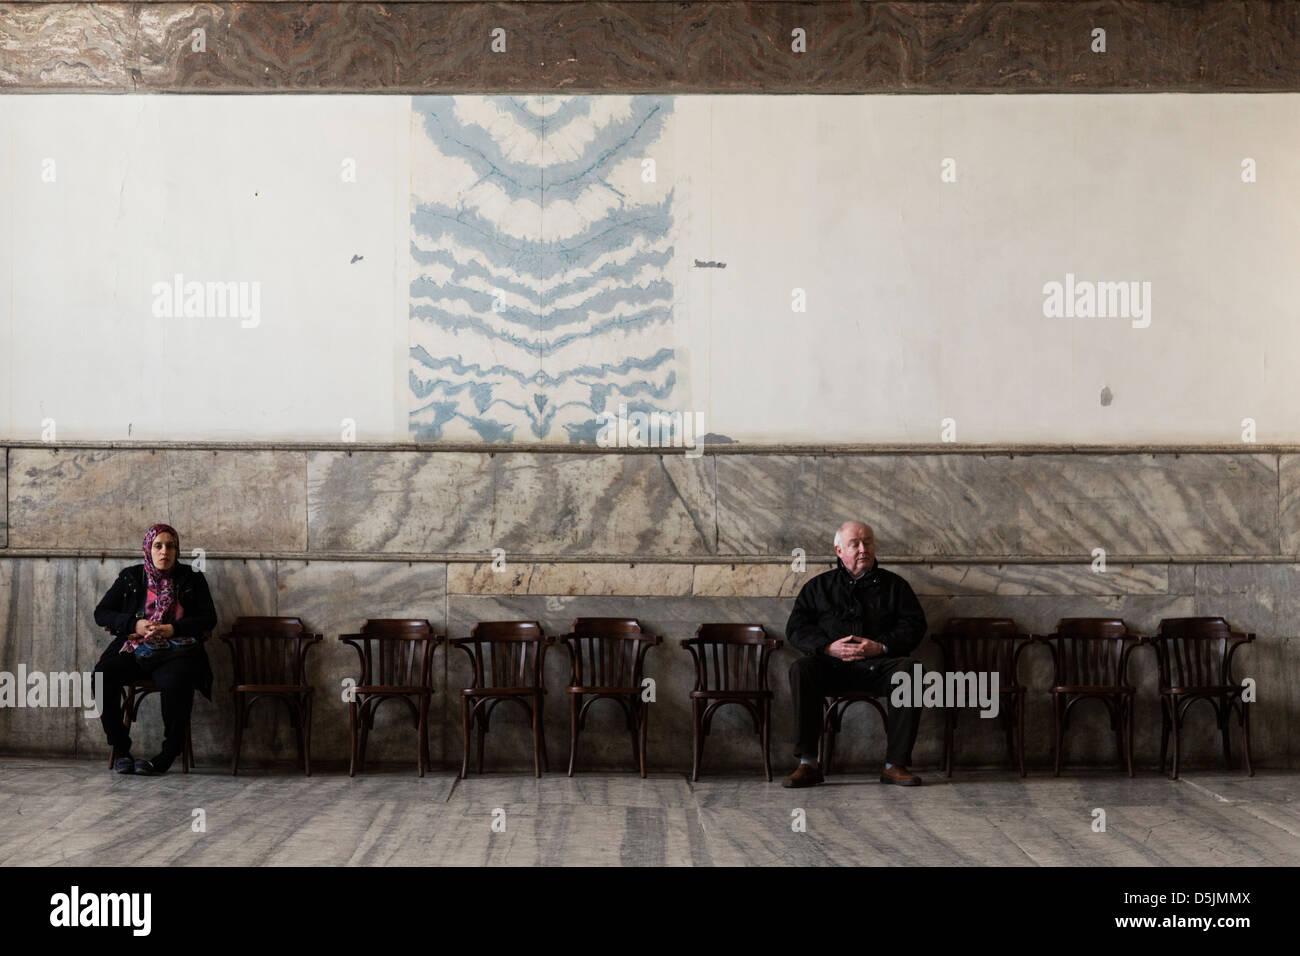 Tourists sit on seats in the Hagia Sophia museum, Istanbul, Turkey. - Stock Image